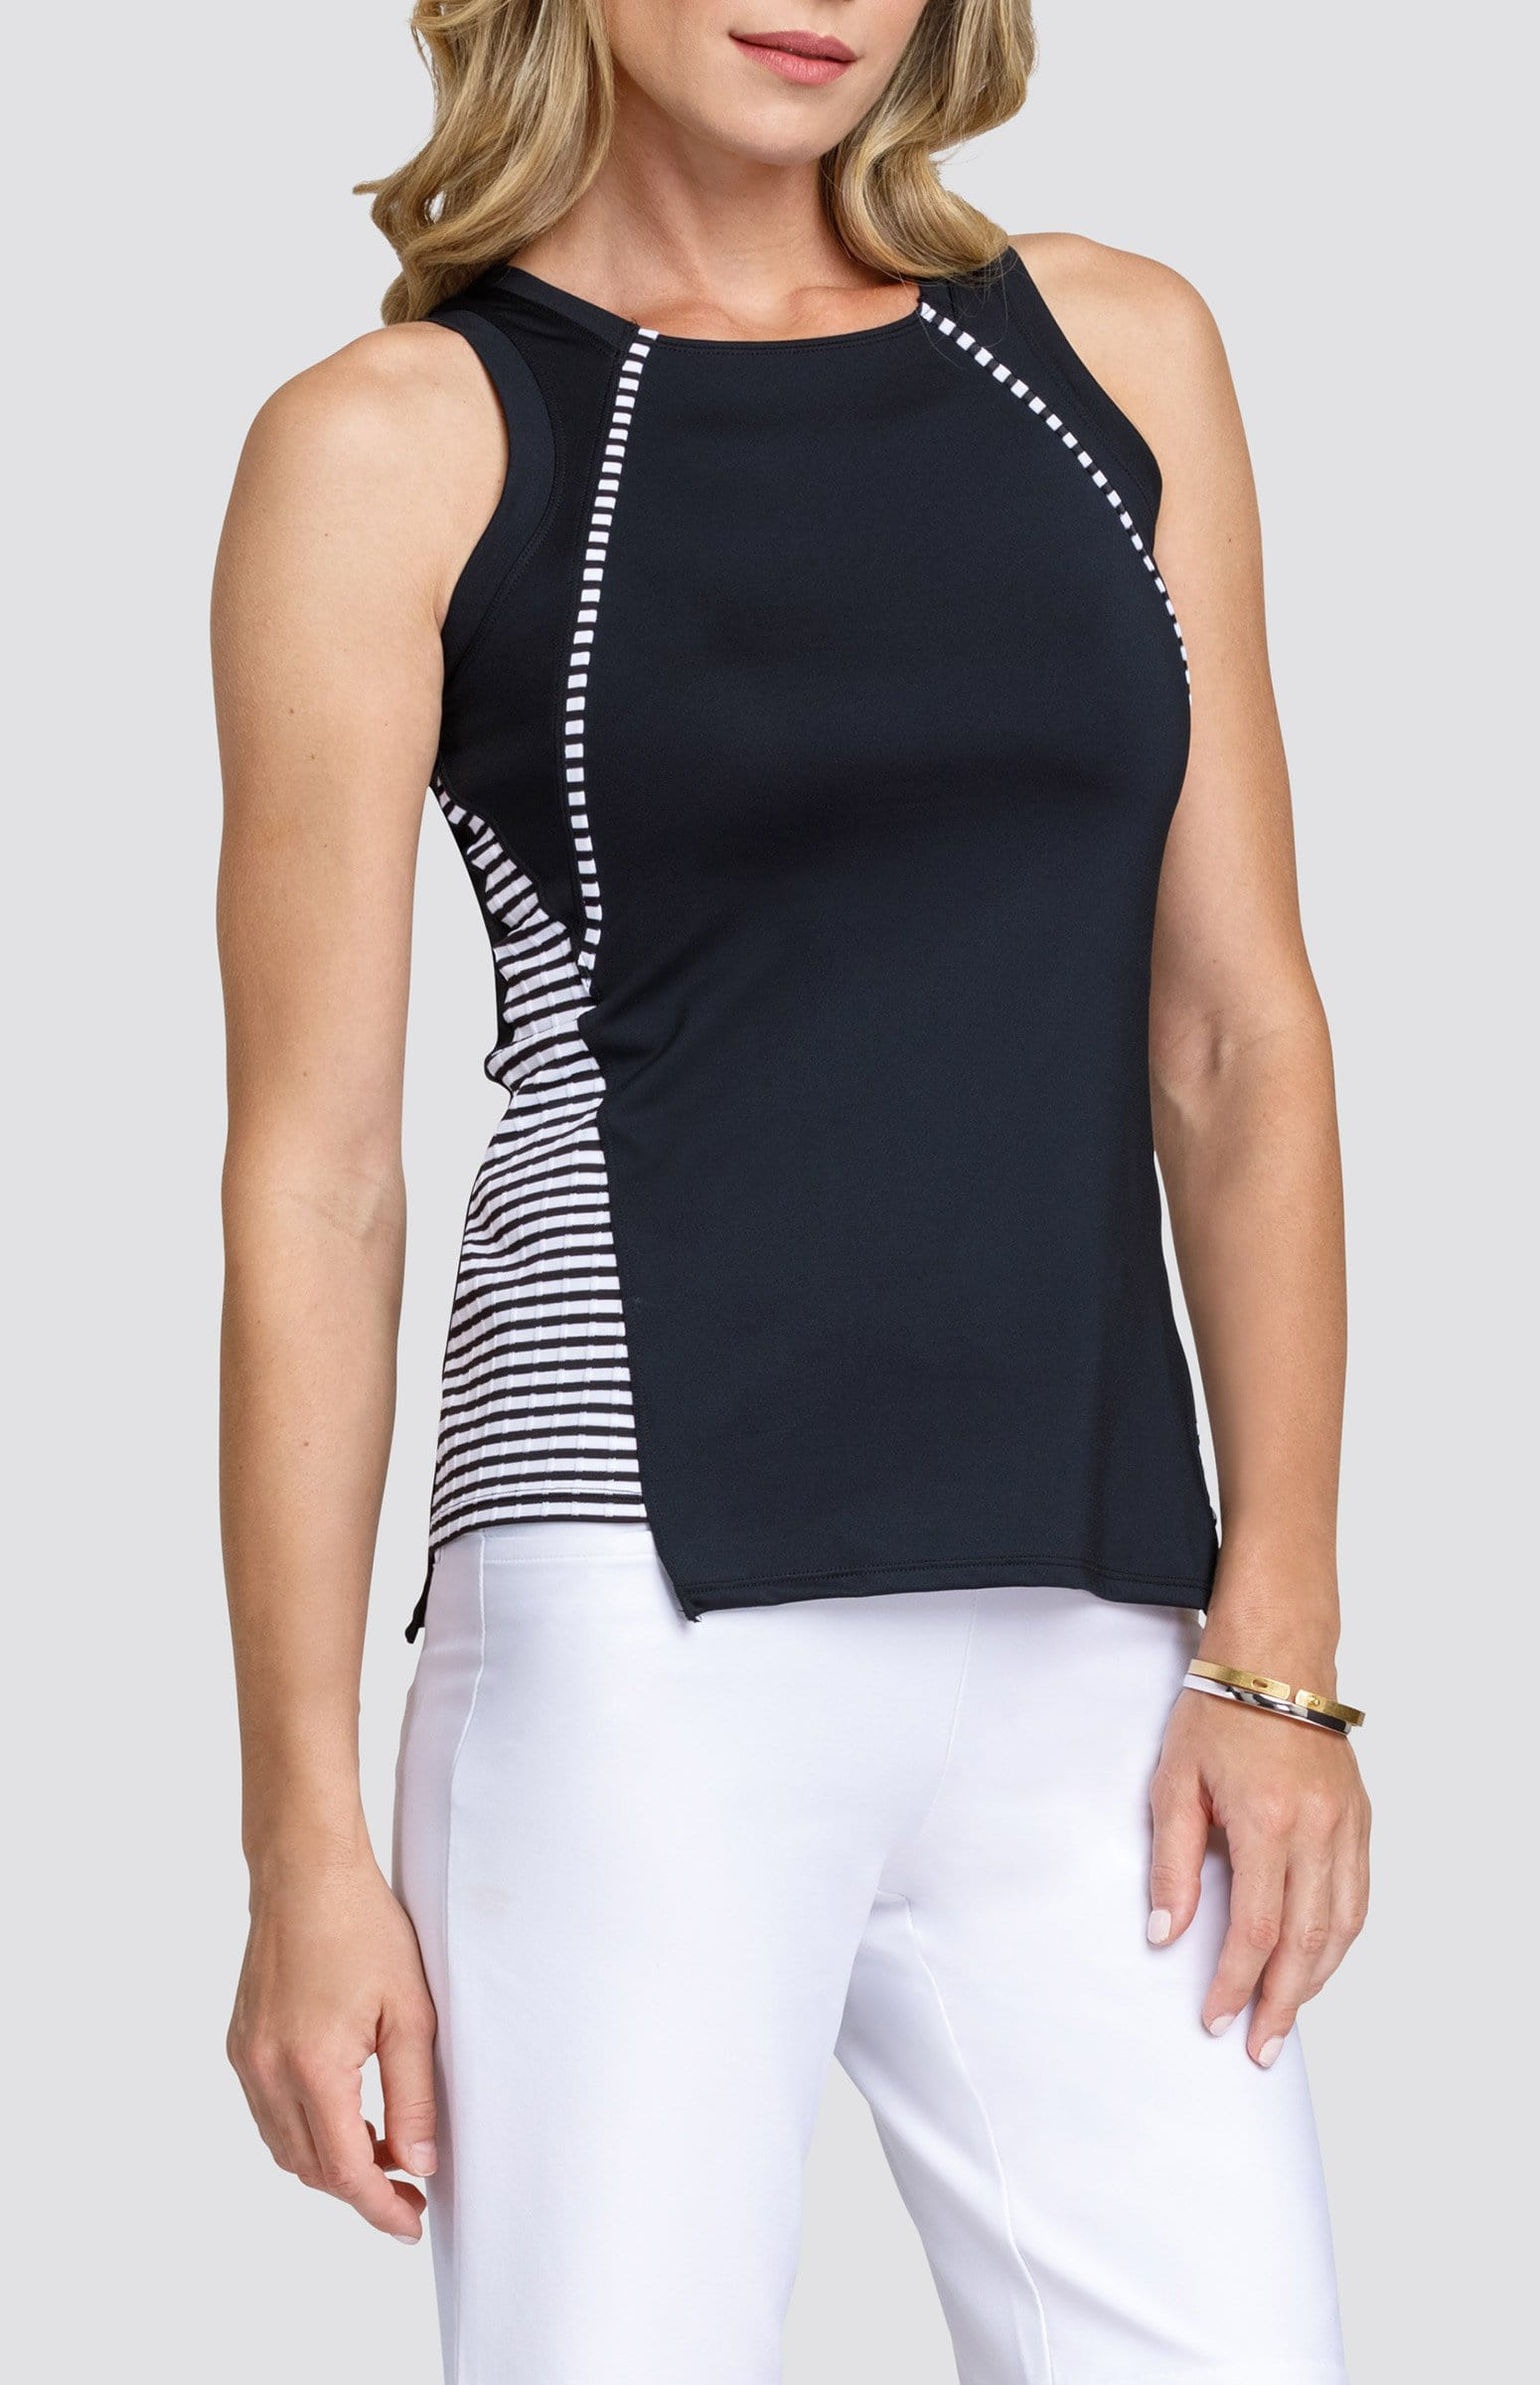 Allie Tank - Onyx Black